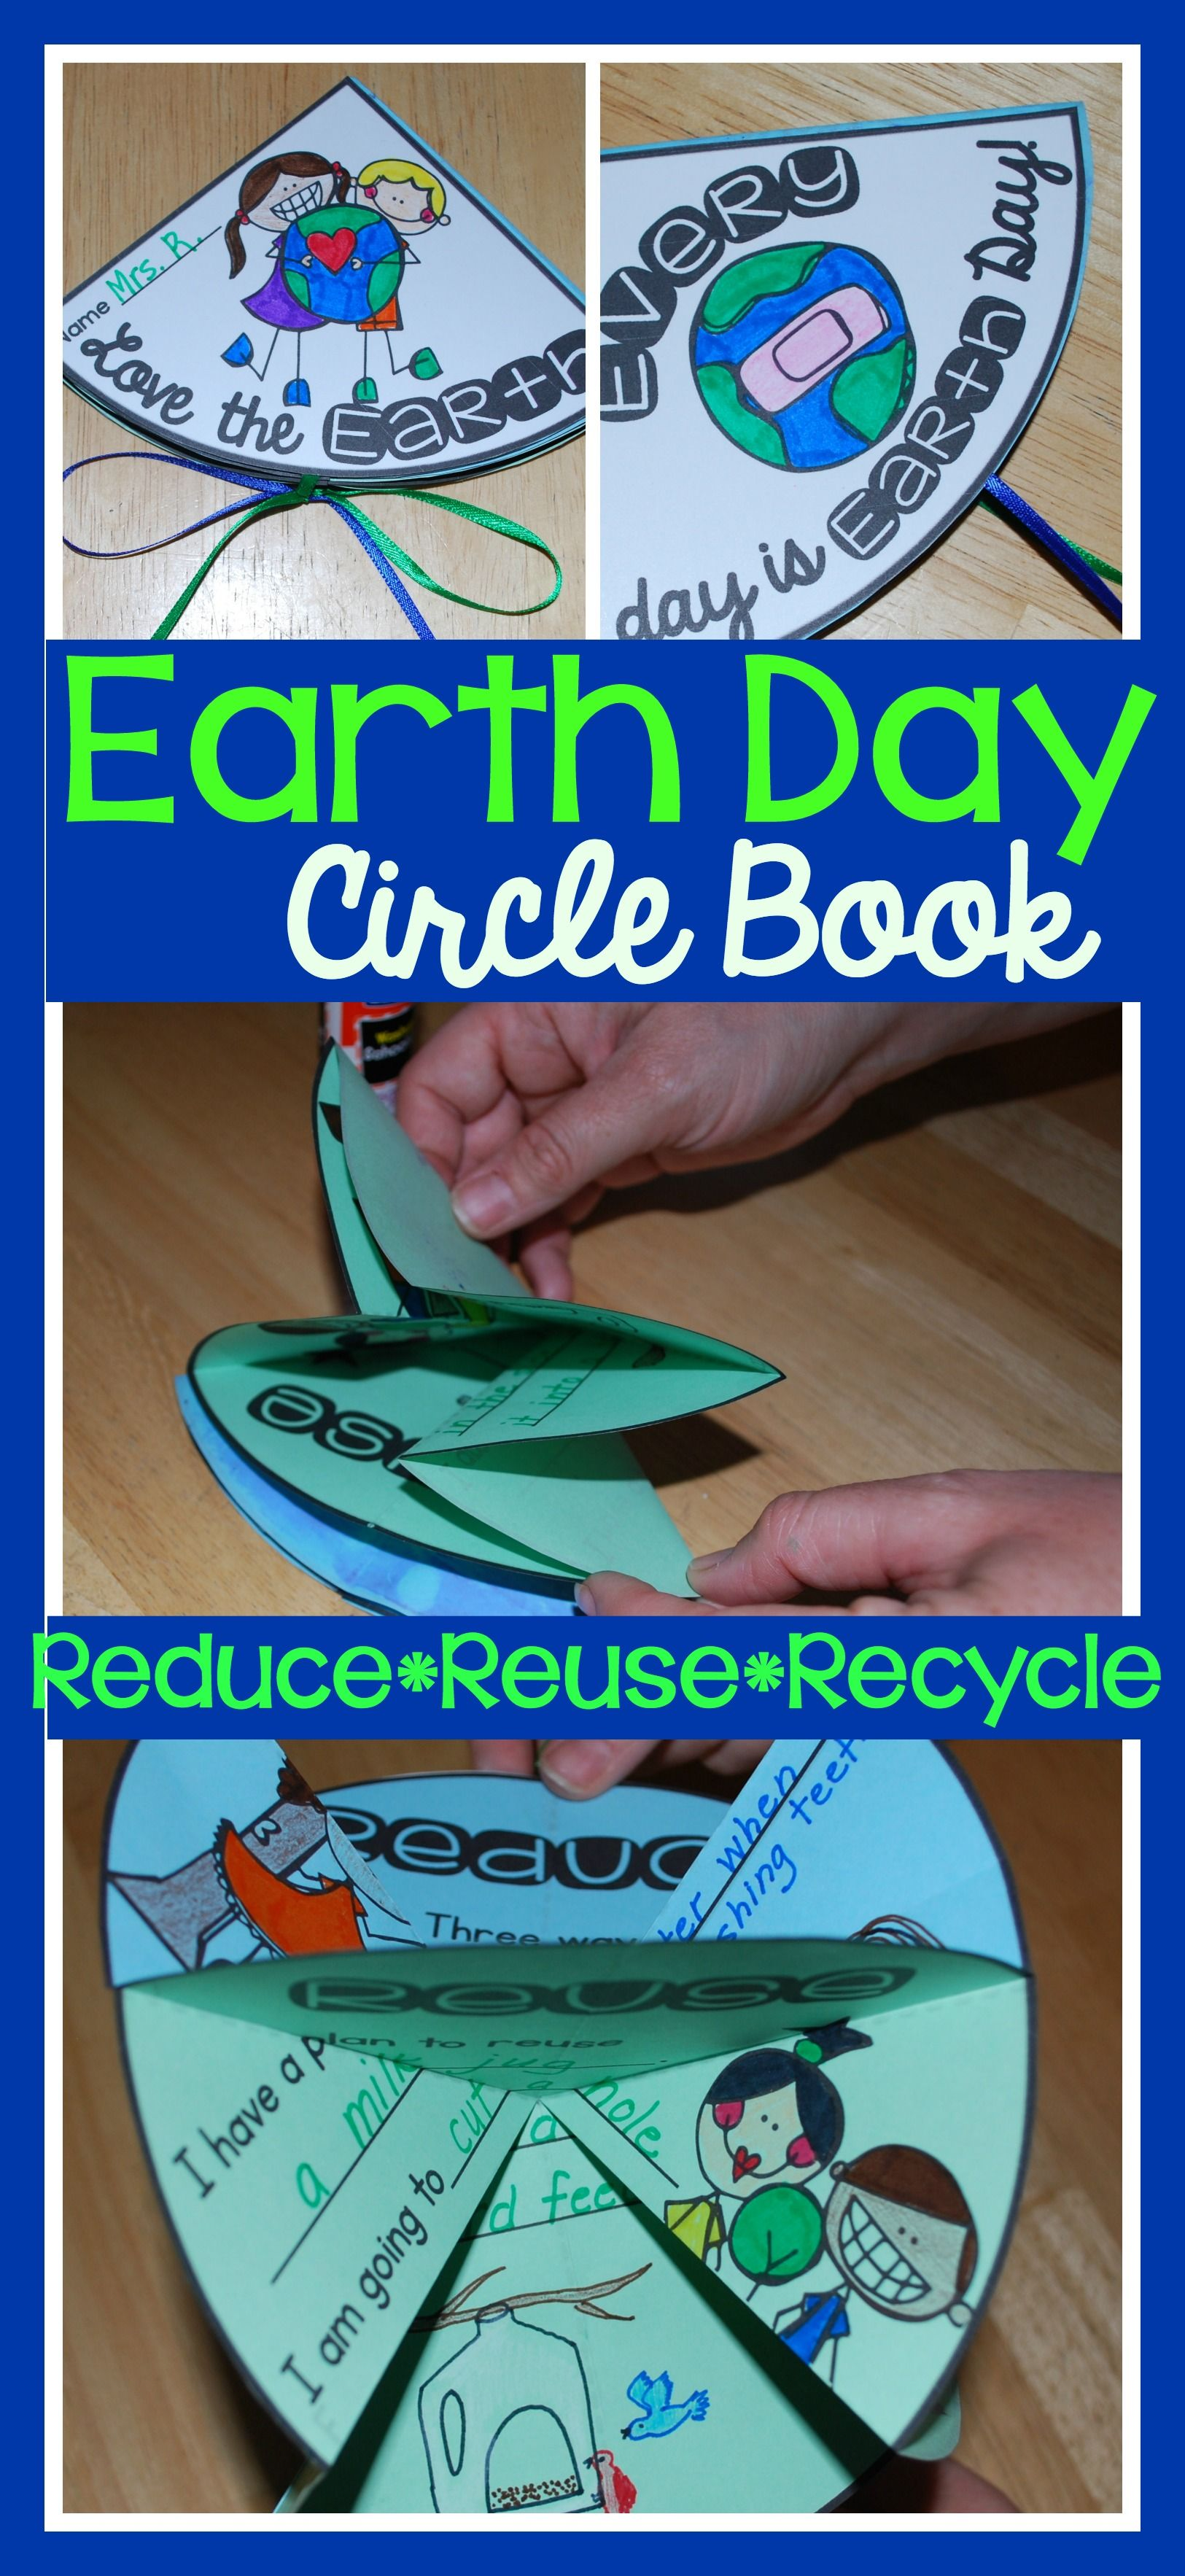 Earth Day Circle Book Reduce Reuse Recycle